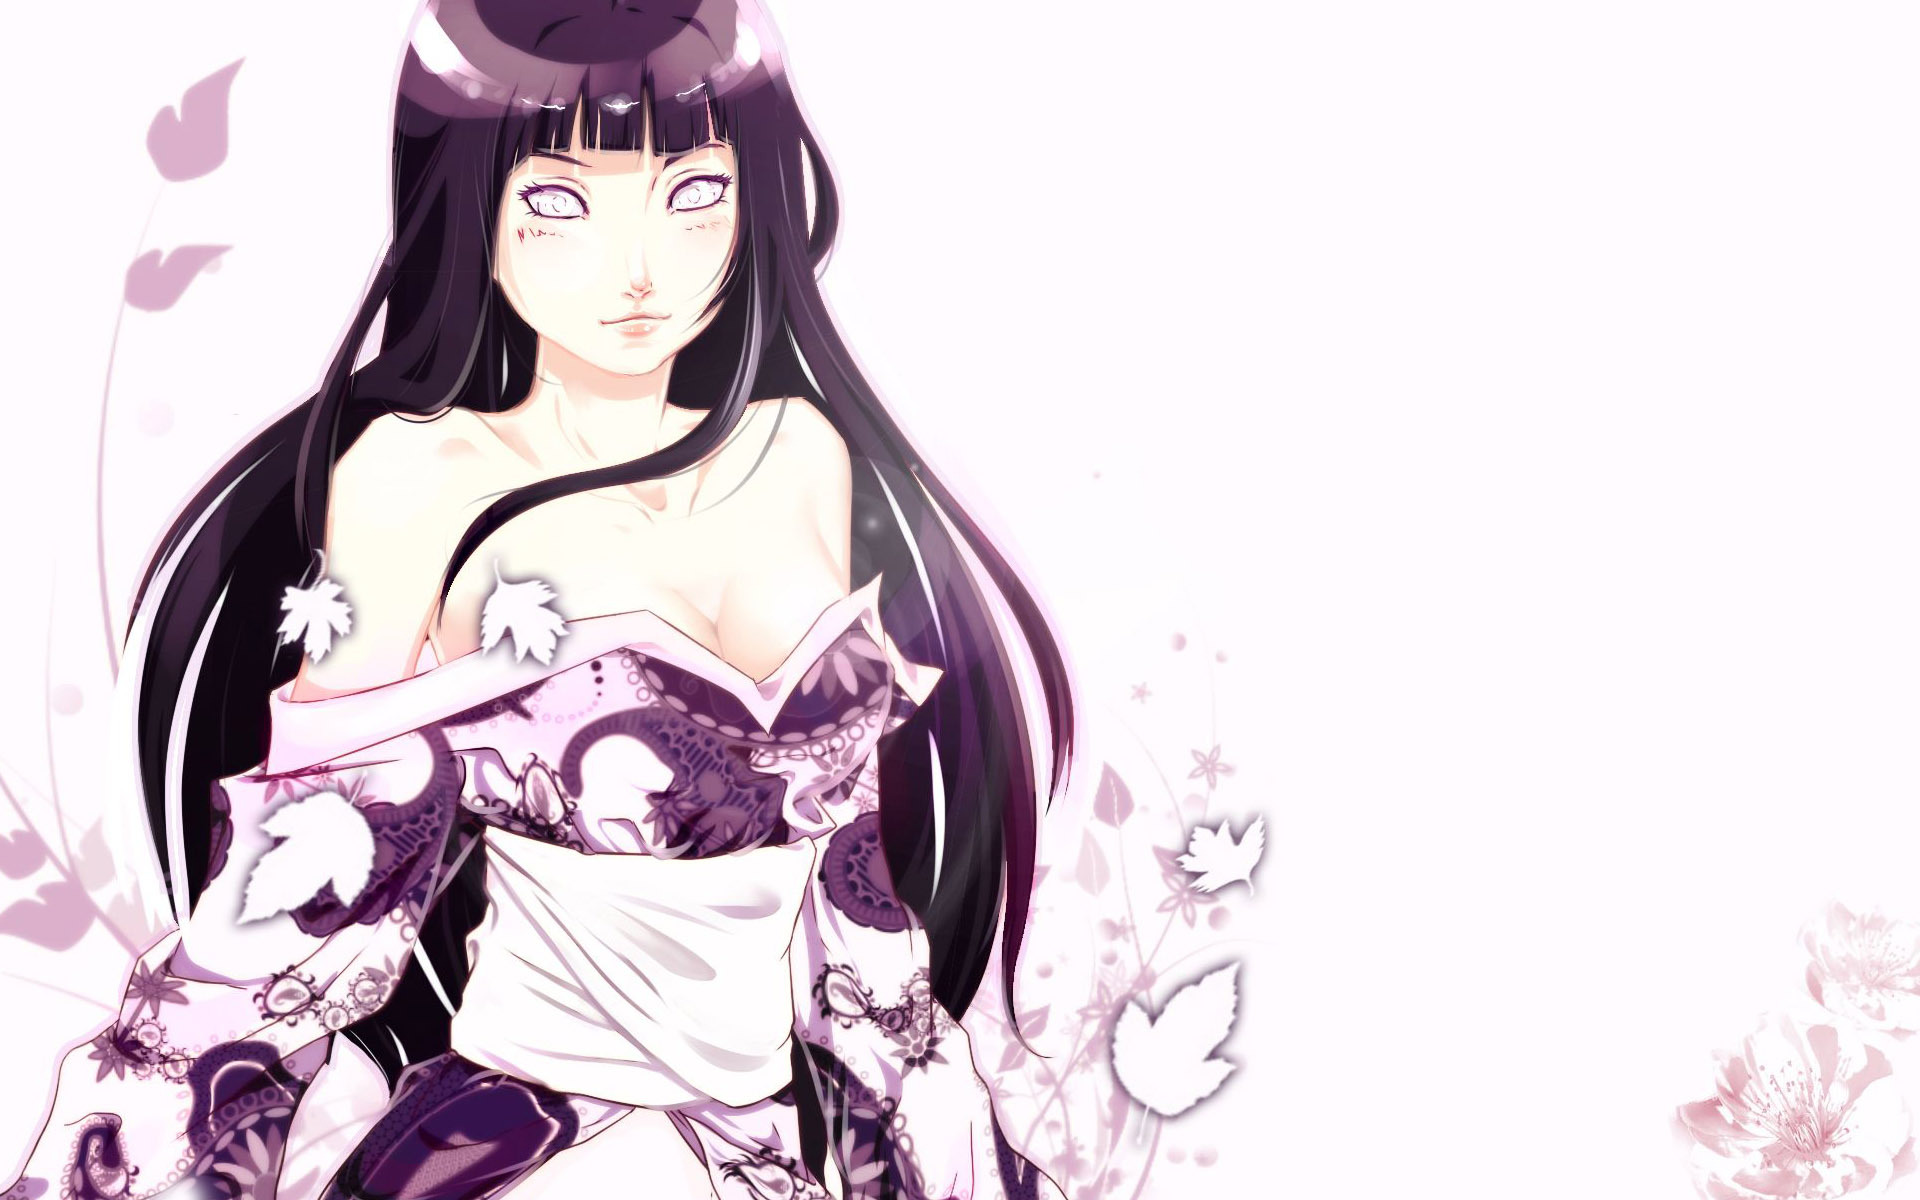 A34 hinata hyuga anime HD Desktop background images pictures wallpapers downloads